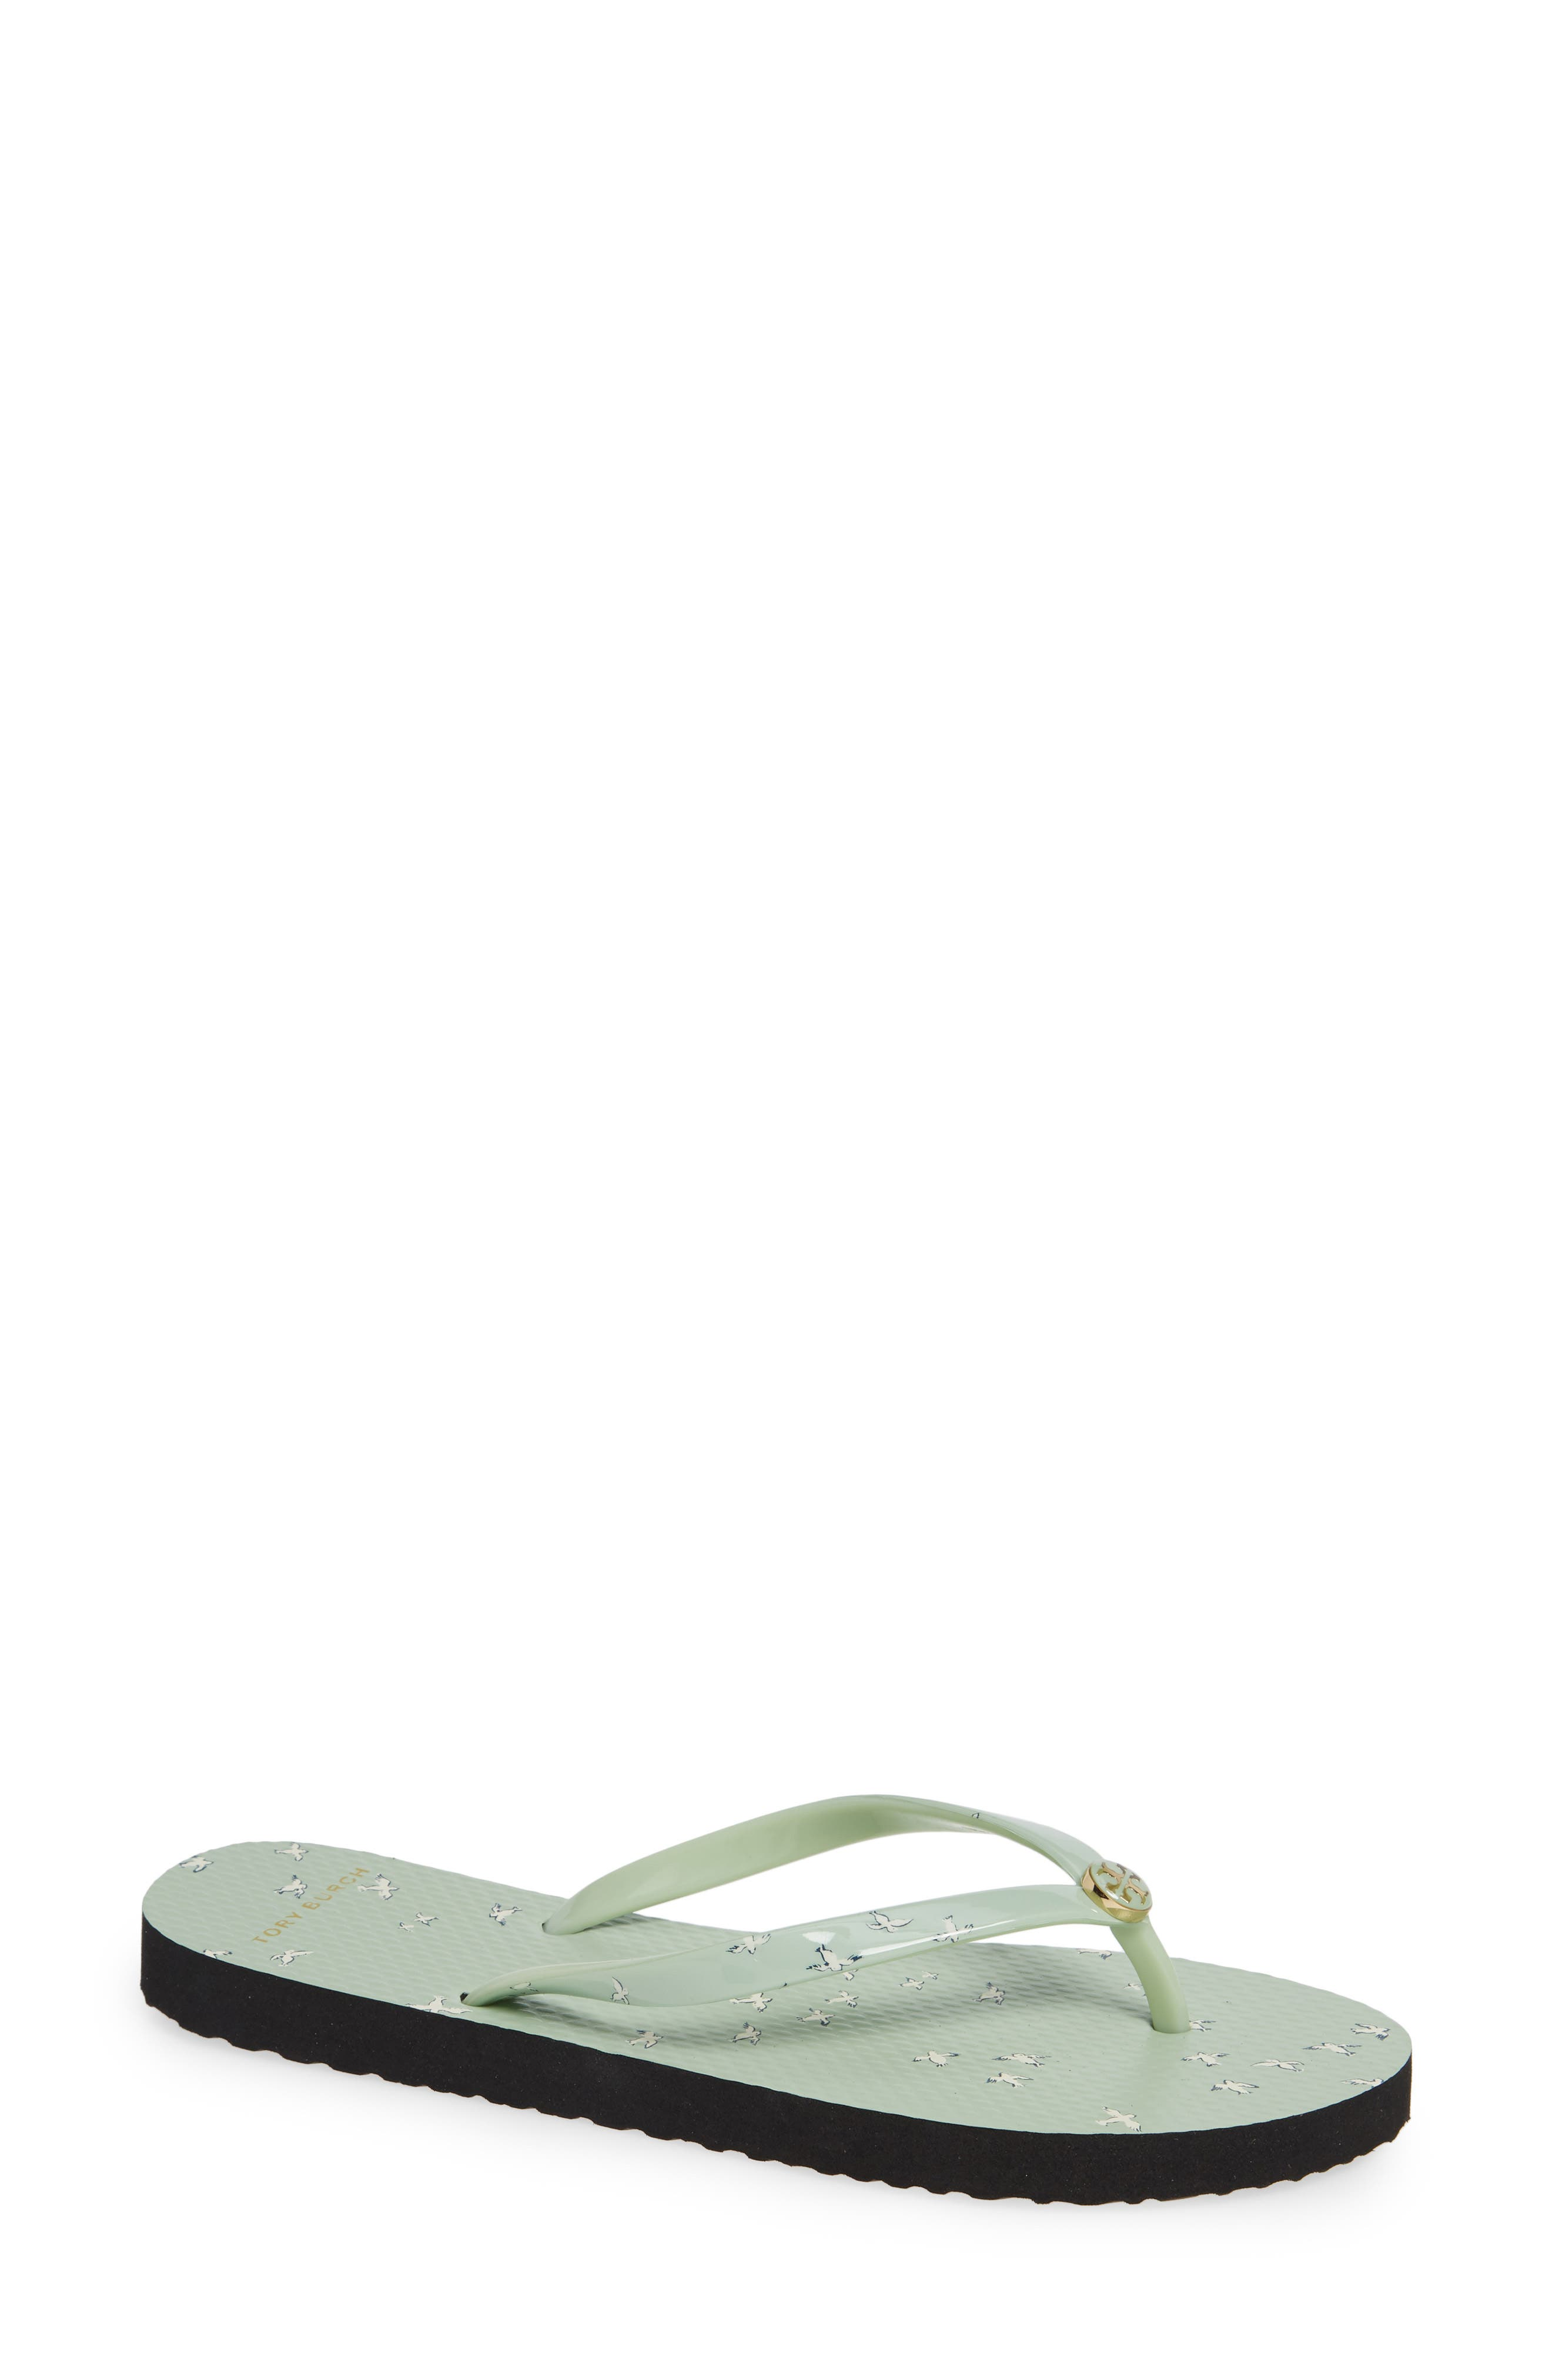 1893b92532d0 Tory Burch Flip-Flops   Sandals for Women